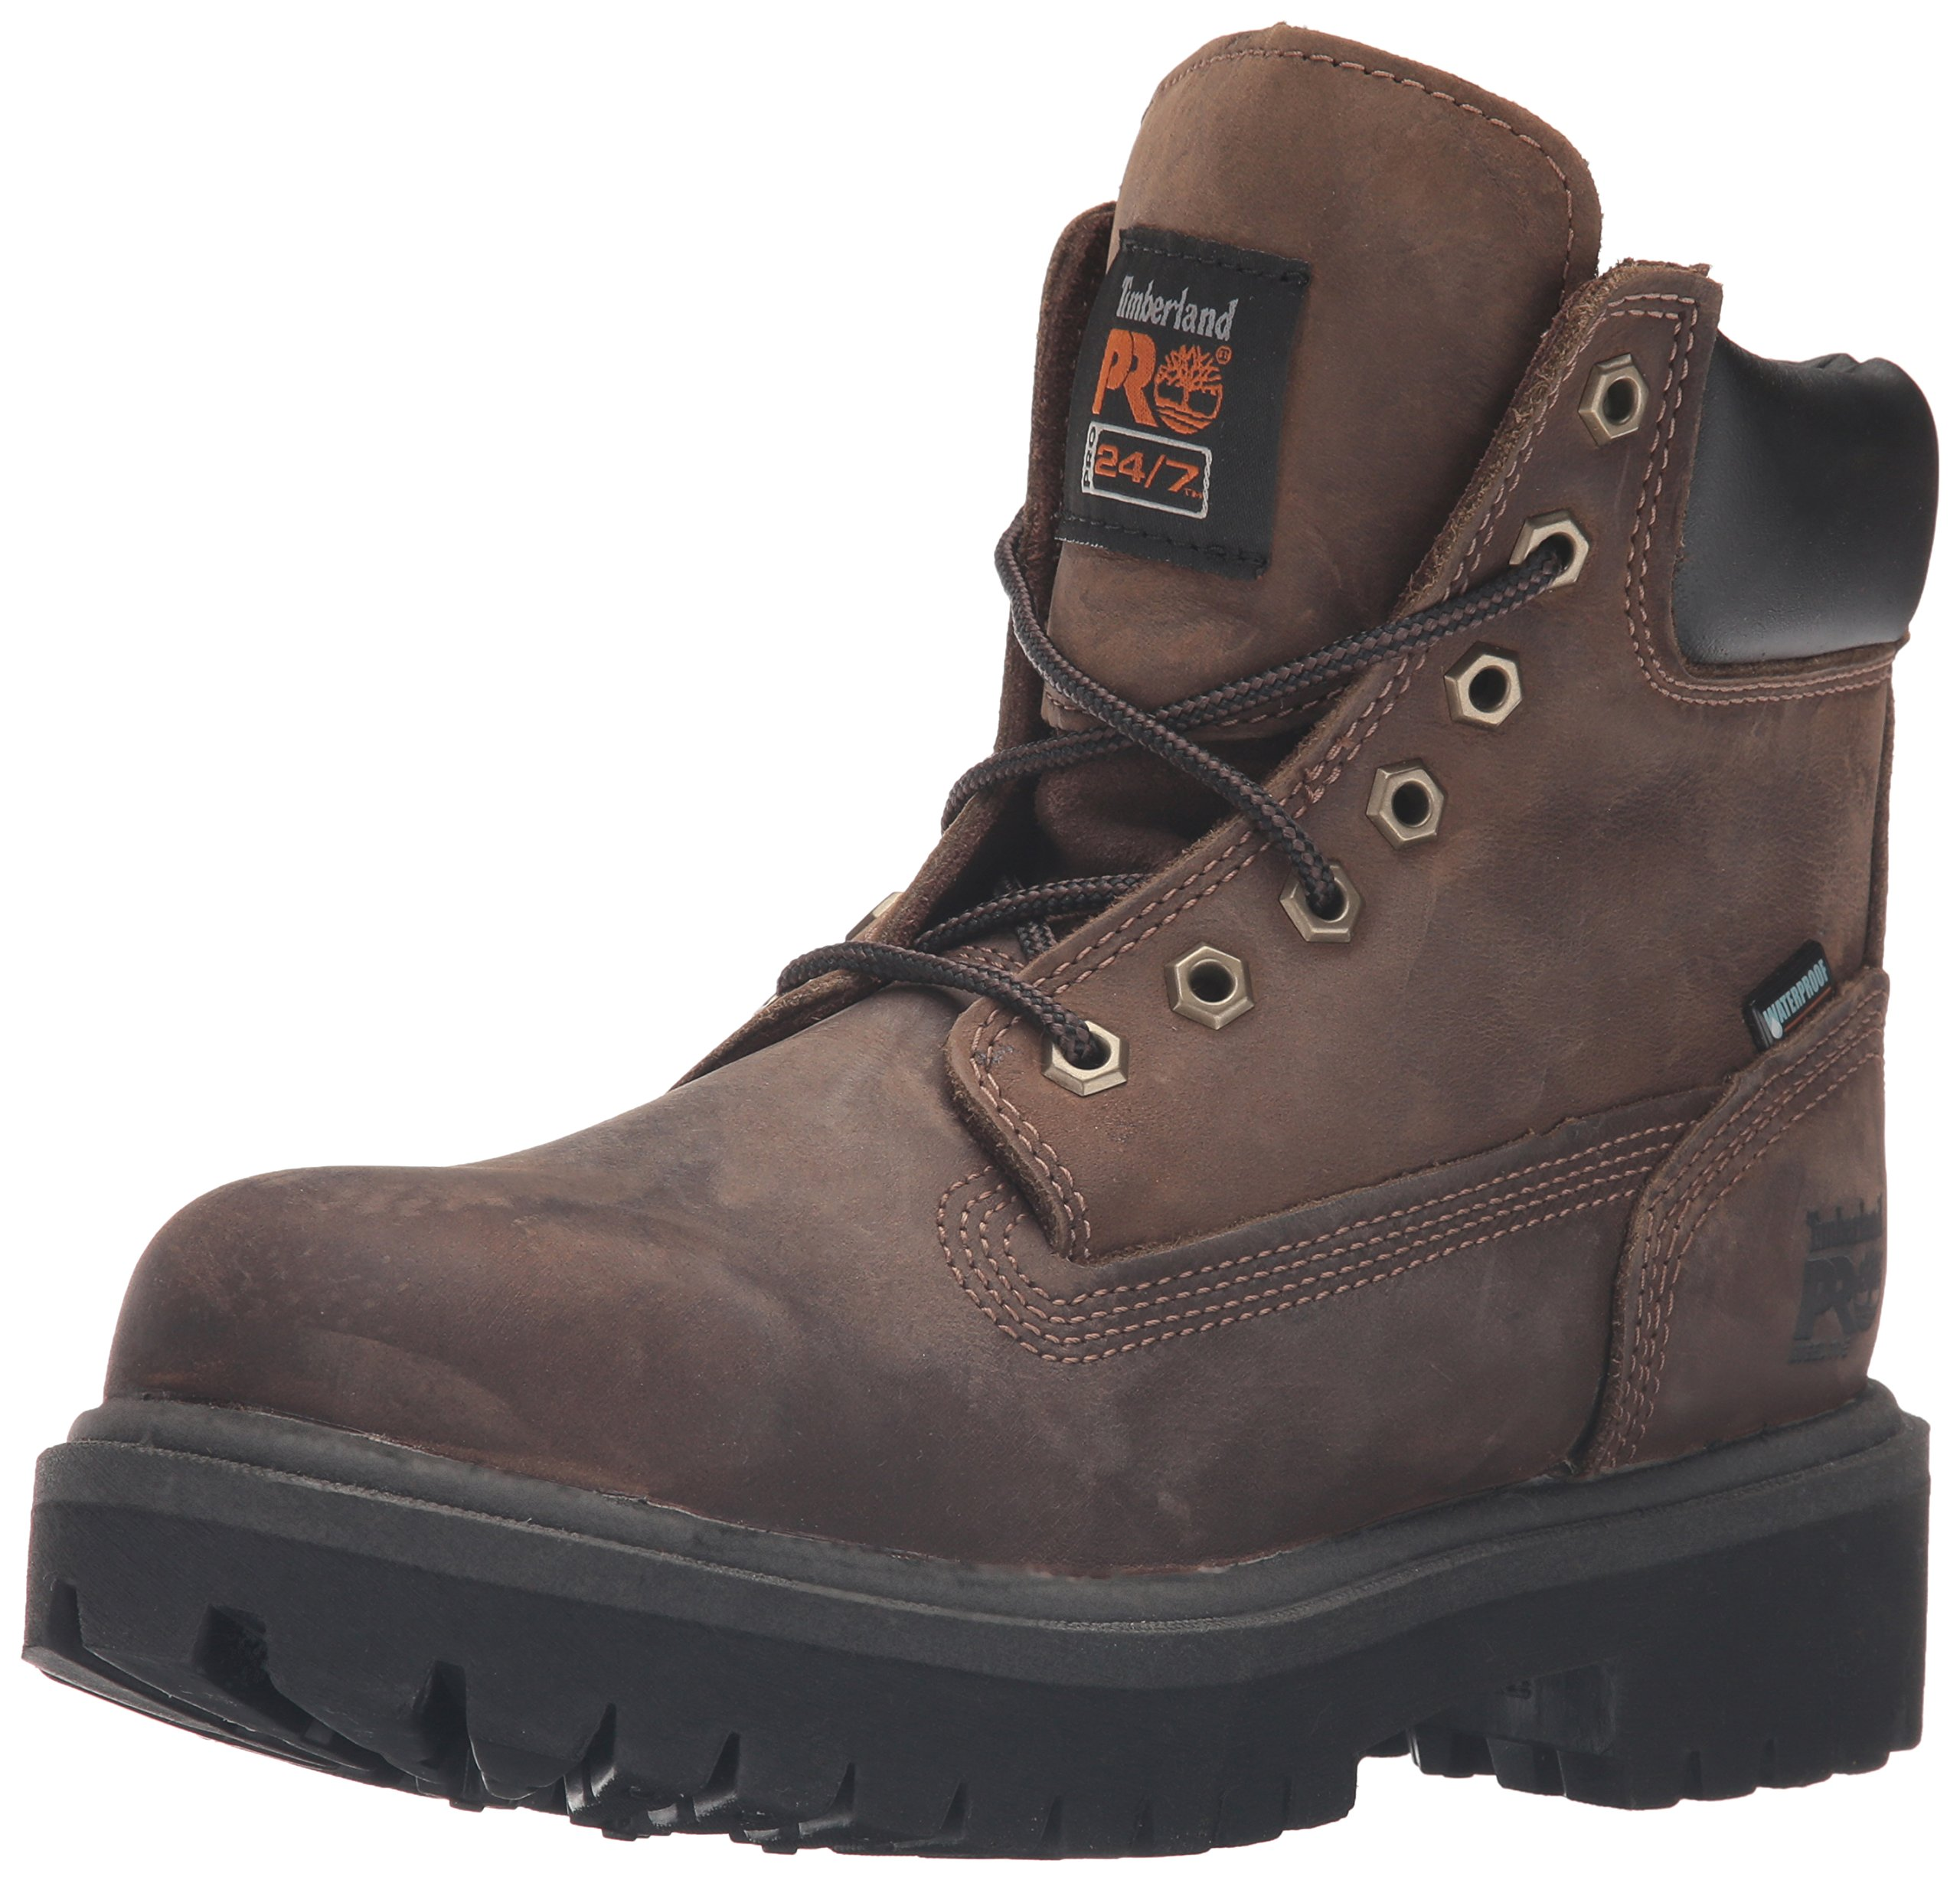 Timberland PRO Men's 38021 Direct Attach 6'' Steel-Toe Boot,Brown,9 W